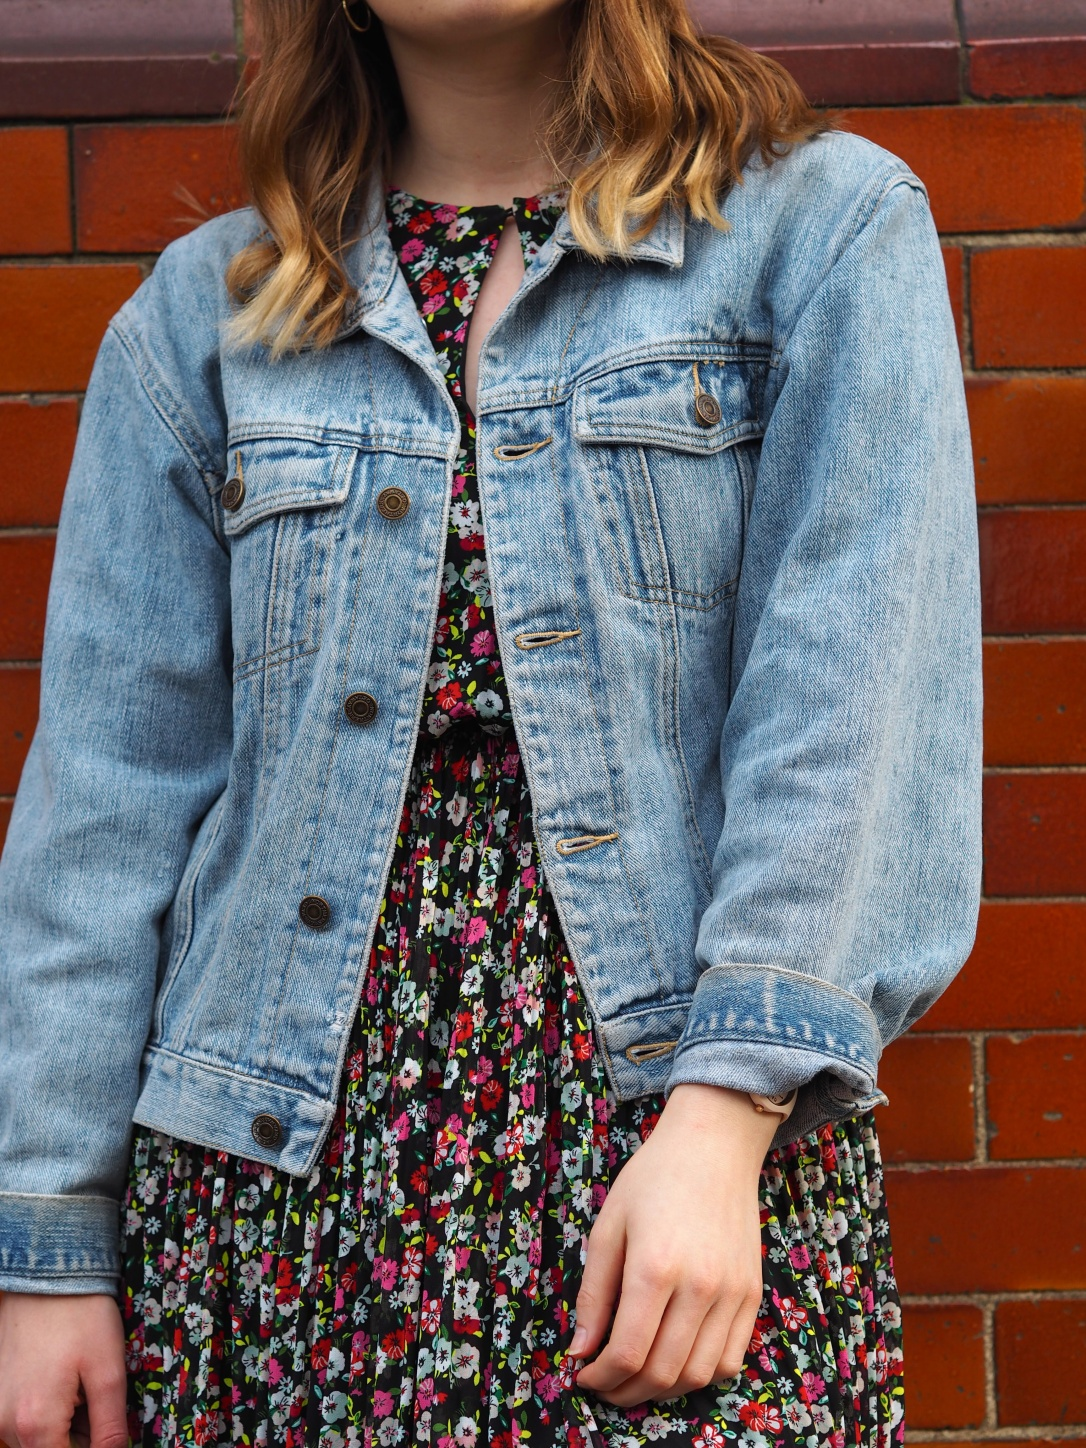 Floral dress and denim jacket